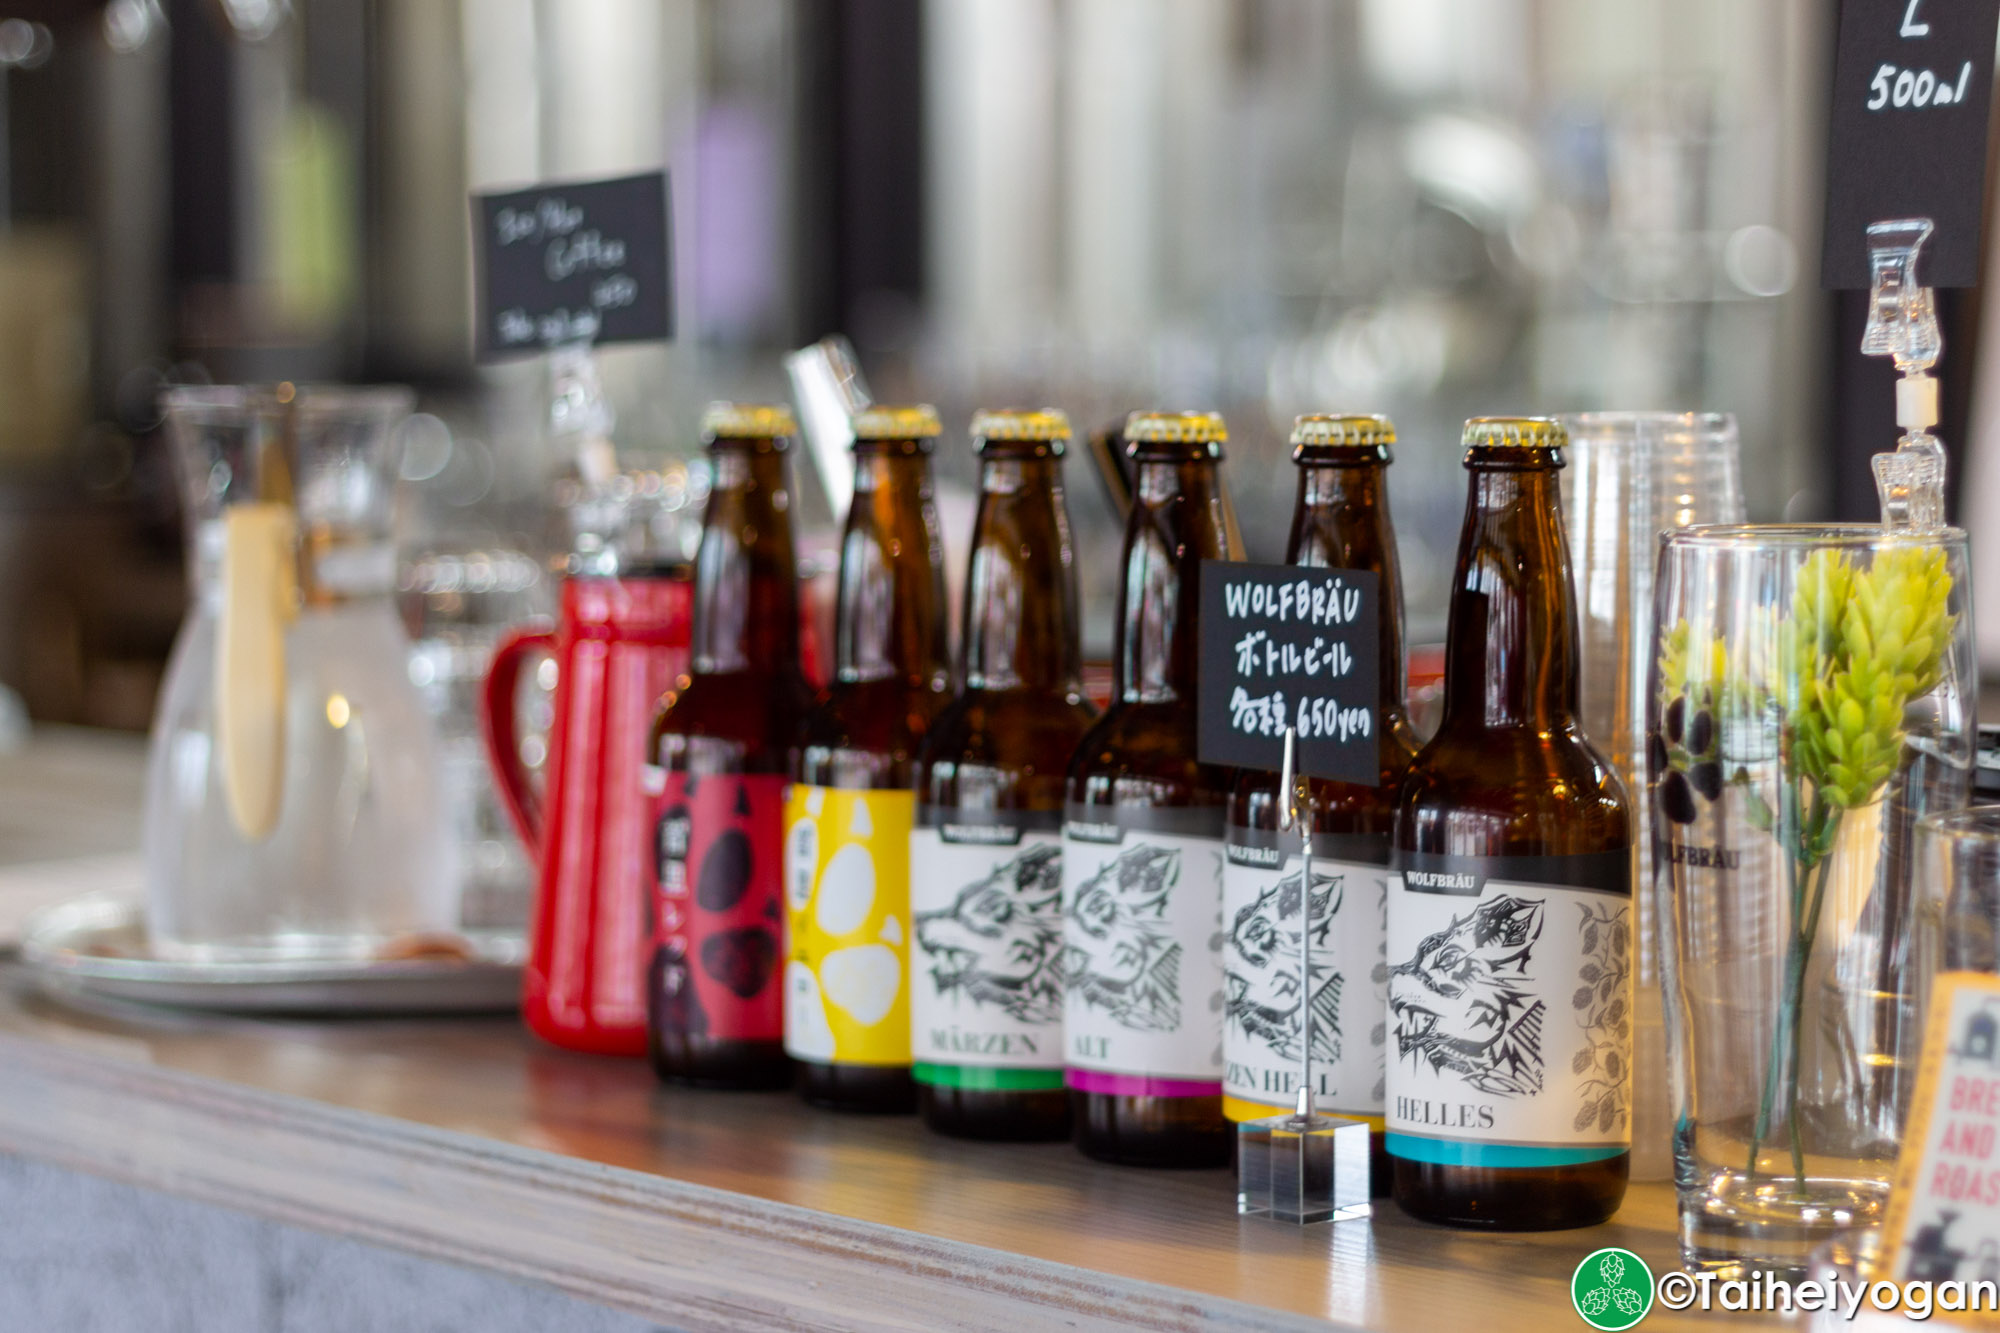 Wolfbrau Brewery & Roastery - Menu - Craft Beer Bottles